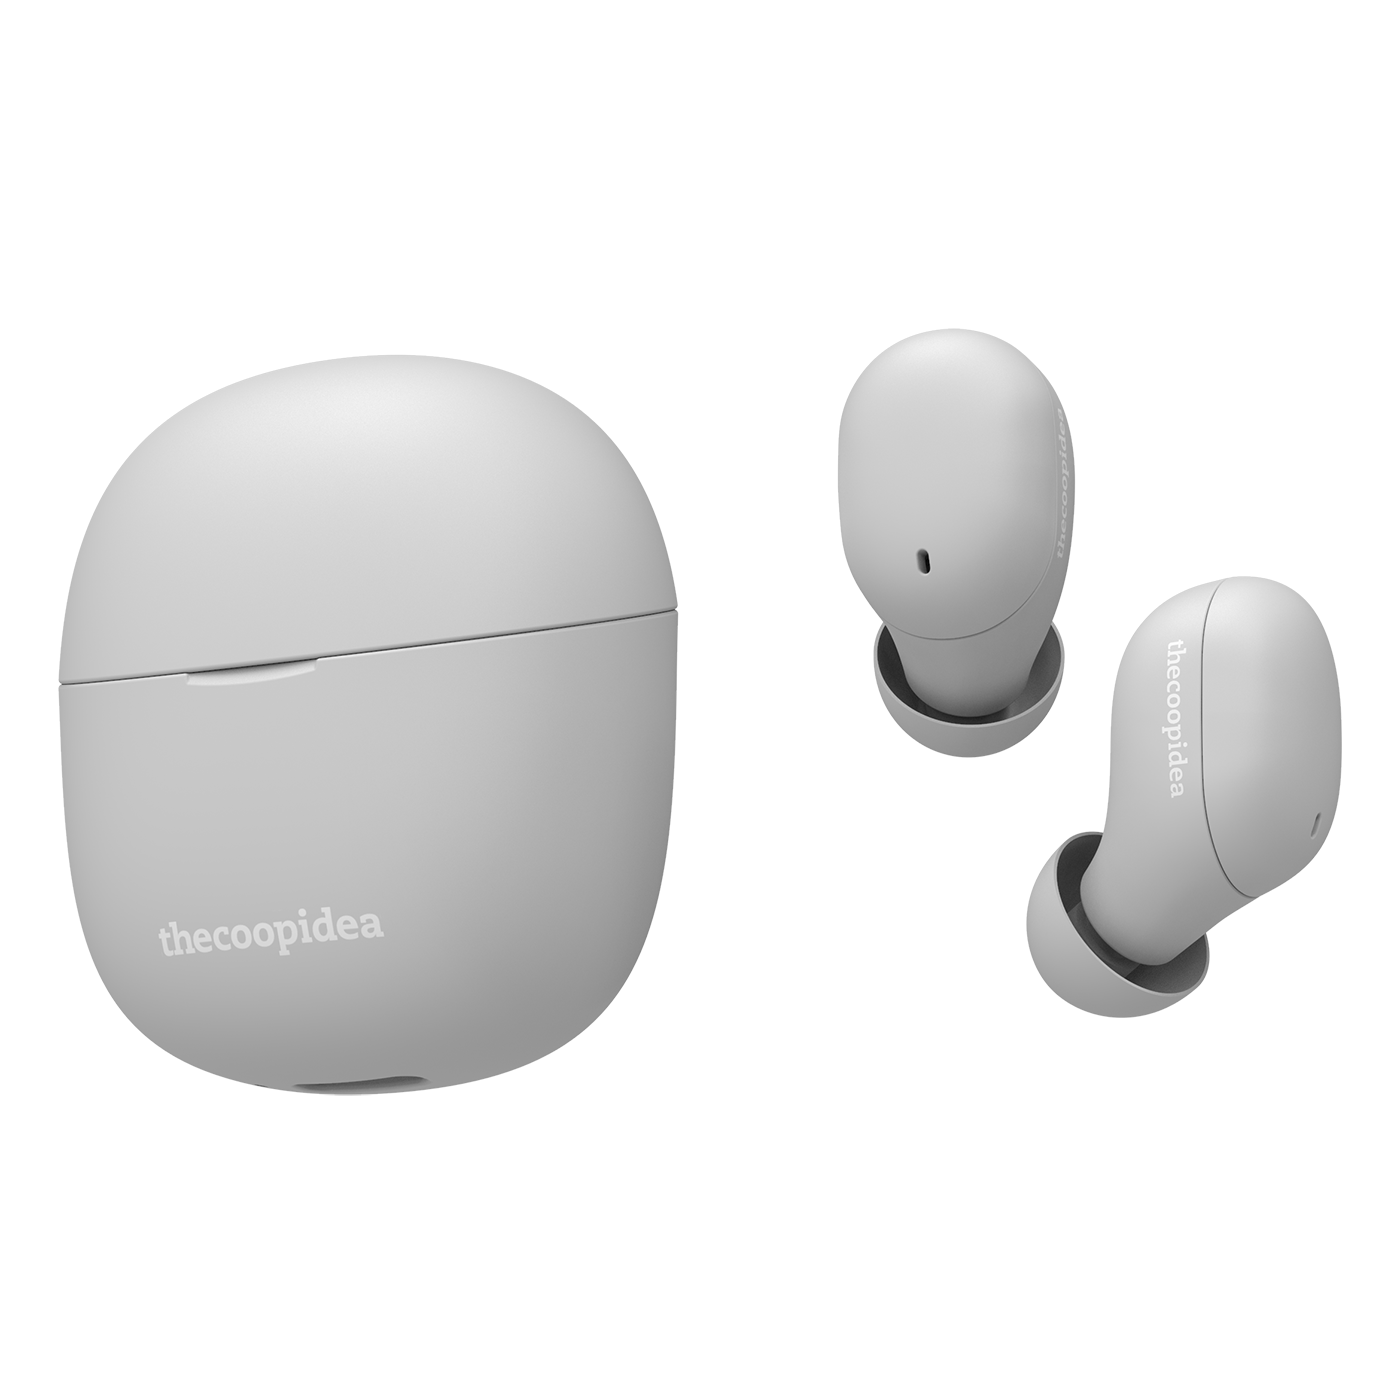 thecoopidea BEANS AIR True Wireless Earbuds - Ash